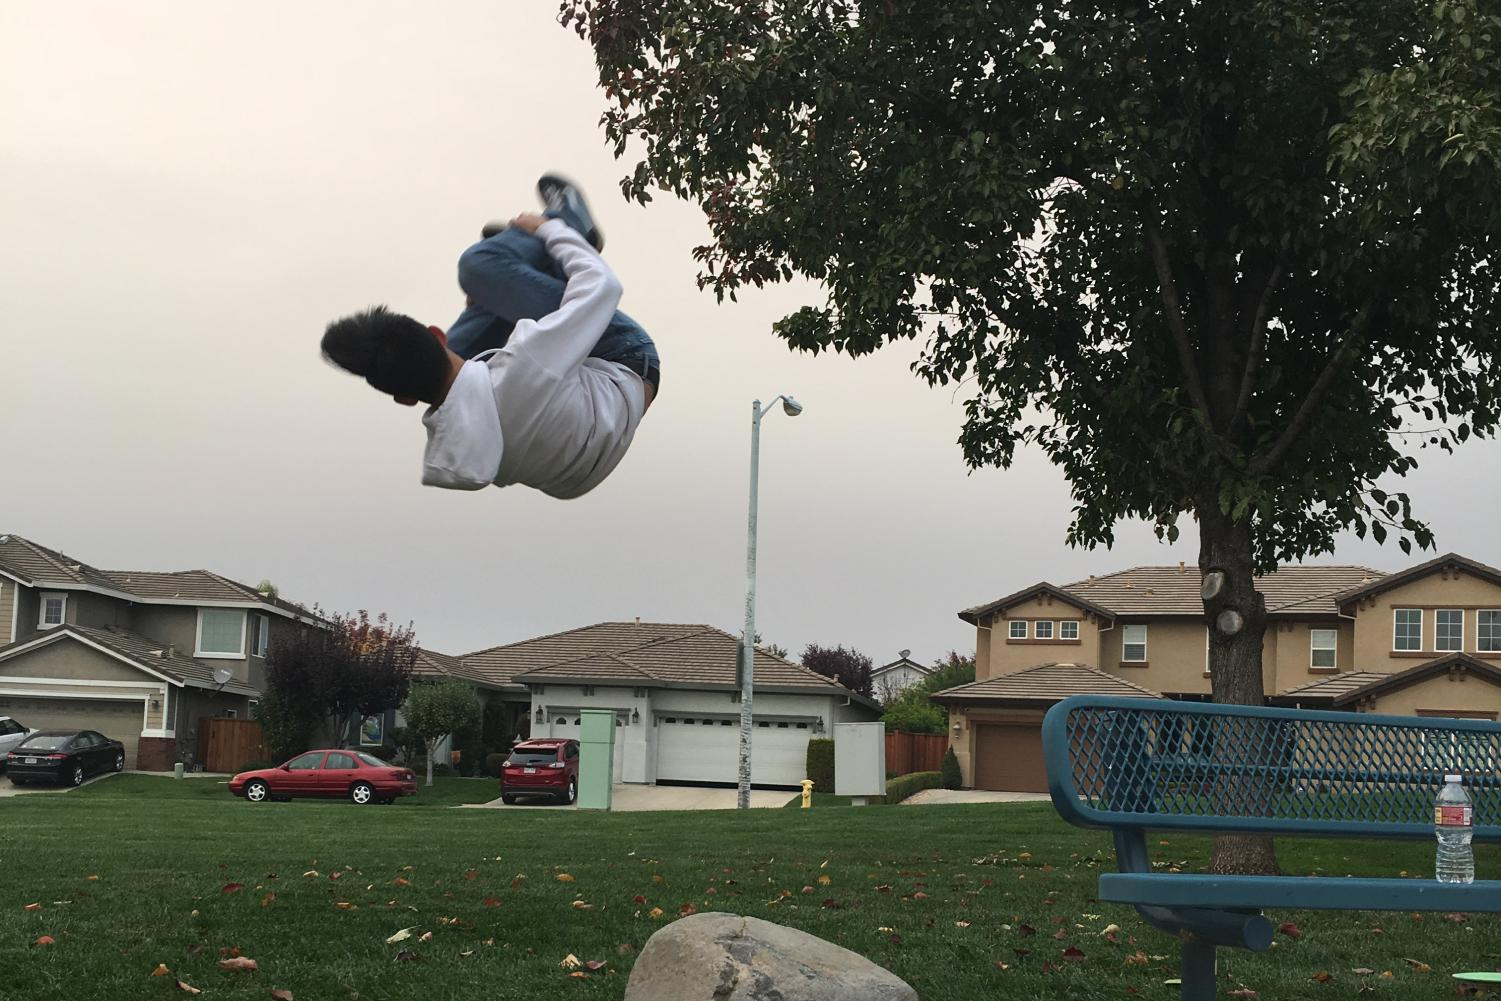 Sophomore Nathan Doan began parkour as a thirteen year old. Since then, he's progressed to practicing free-running, as well as an apprenticeship position at his parkour training academy, Free Flow Academy. Within several months, Doan will graduate from the apprenticeship course and begin a payed job as a coach.